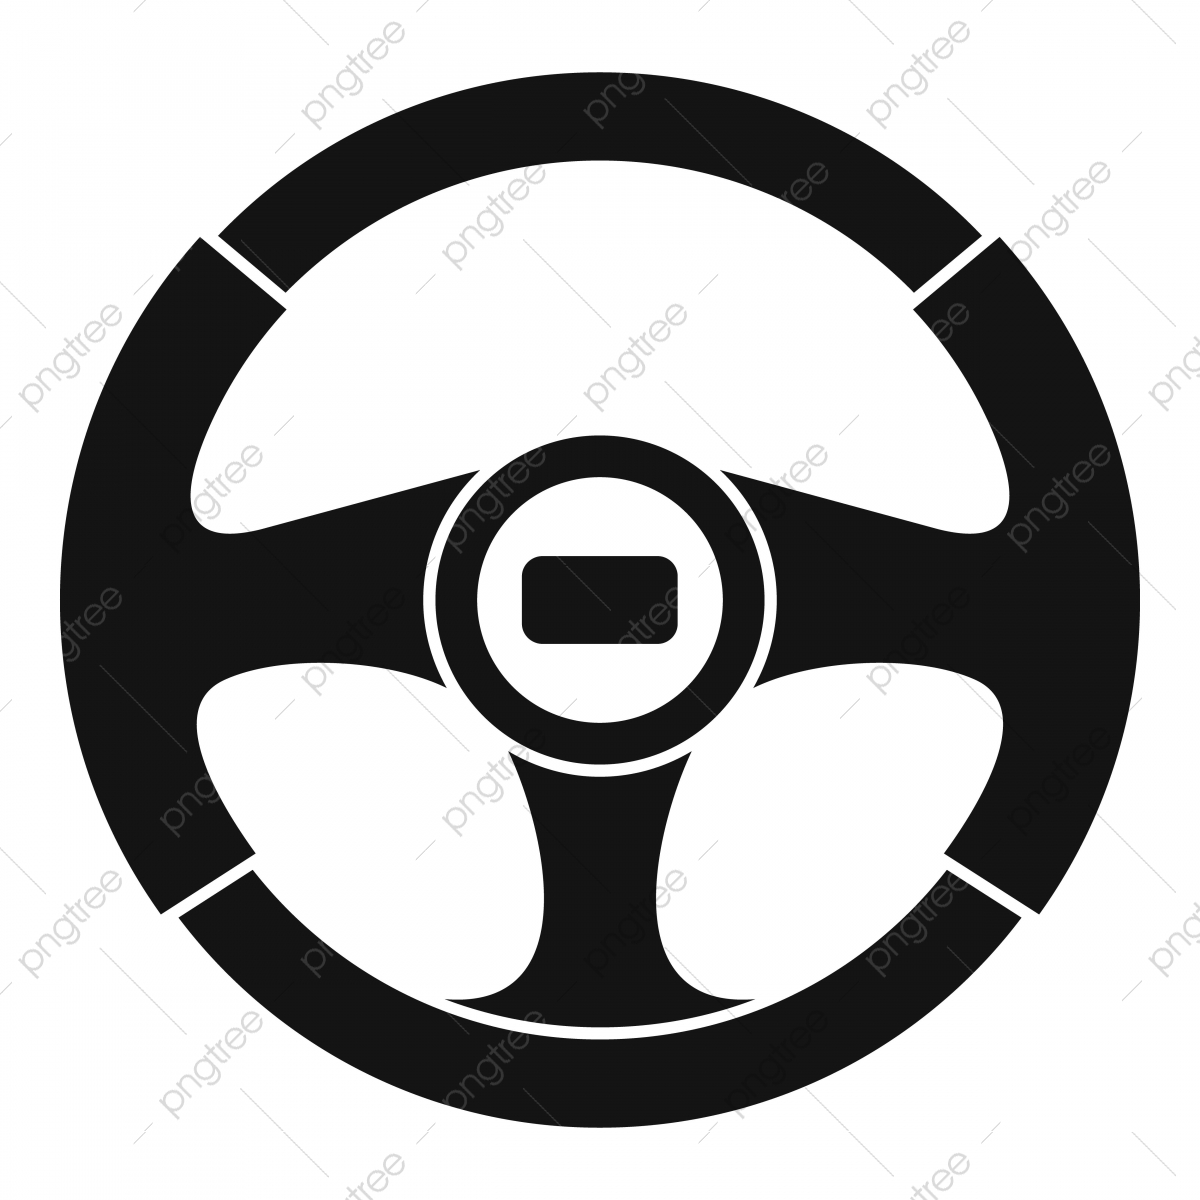 steering wheel png images vector and psd files free download on pngtree https pngtree com freepng car steering wheel icon simple style 5223720 html